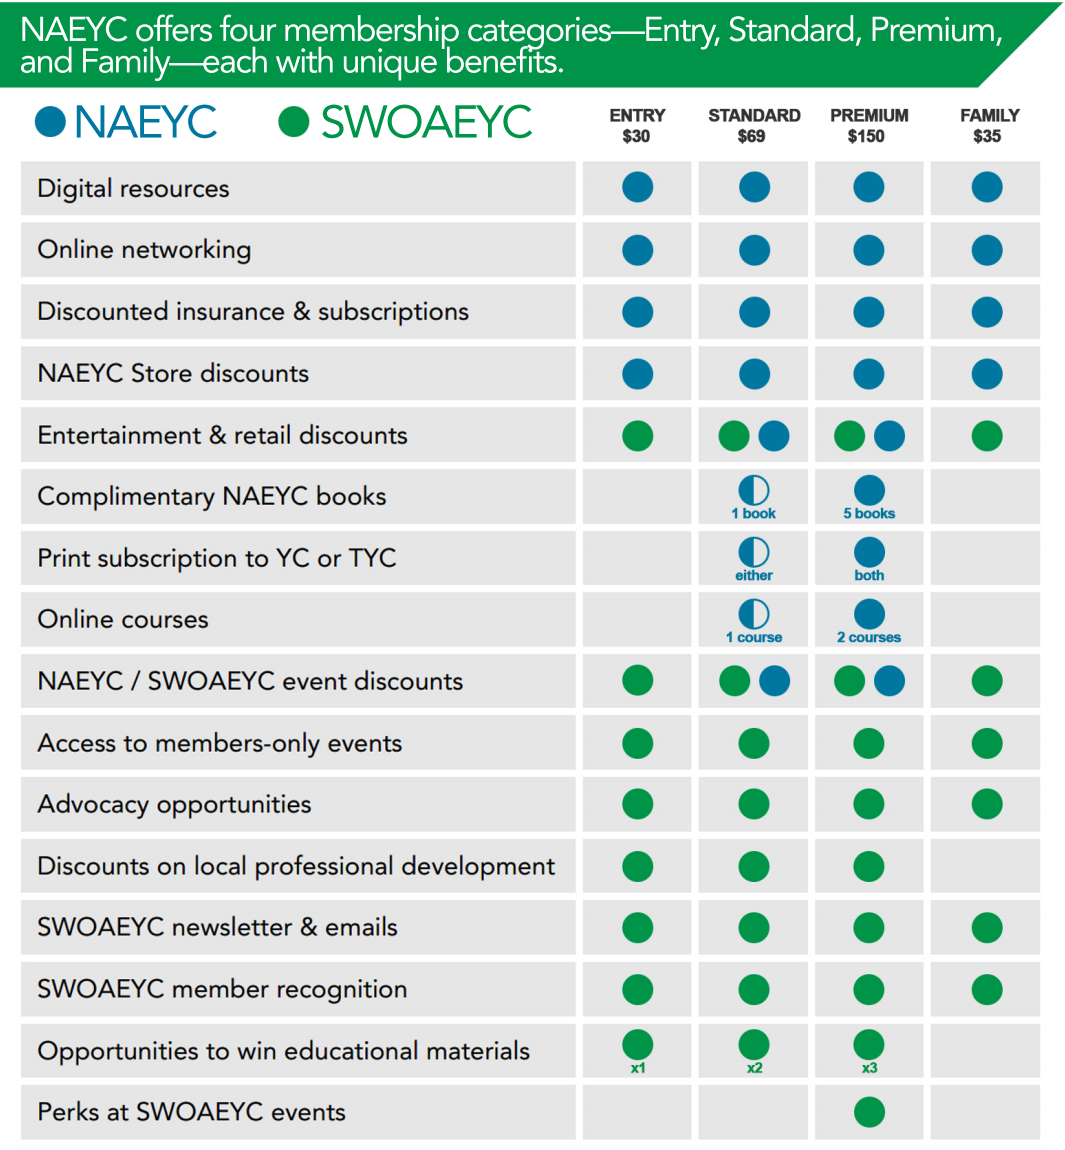 NAEYC & SWOAEYC Membership Benefits